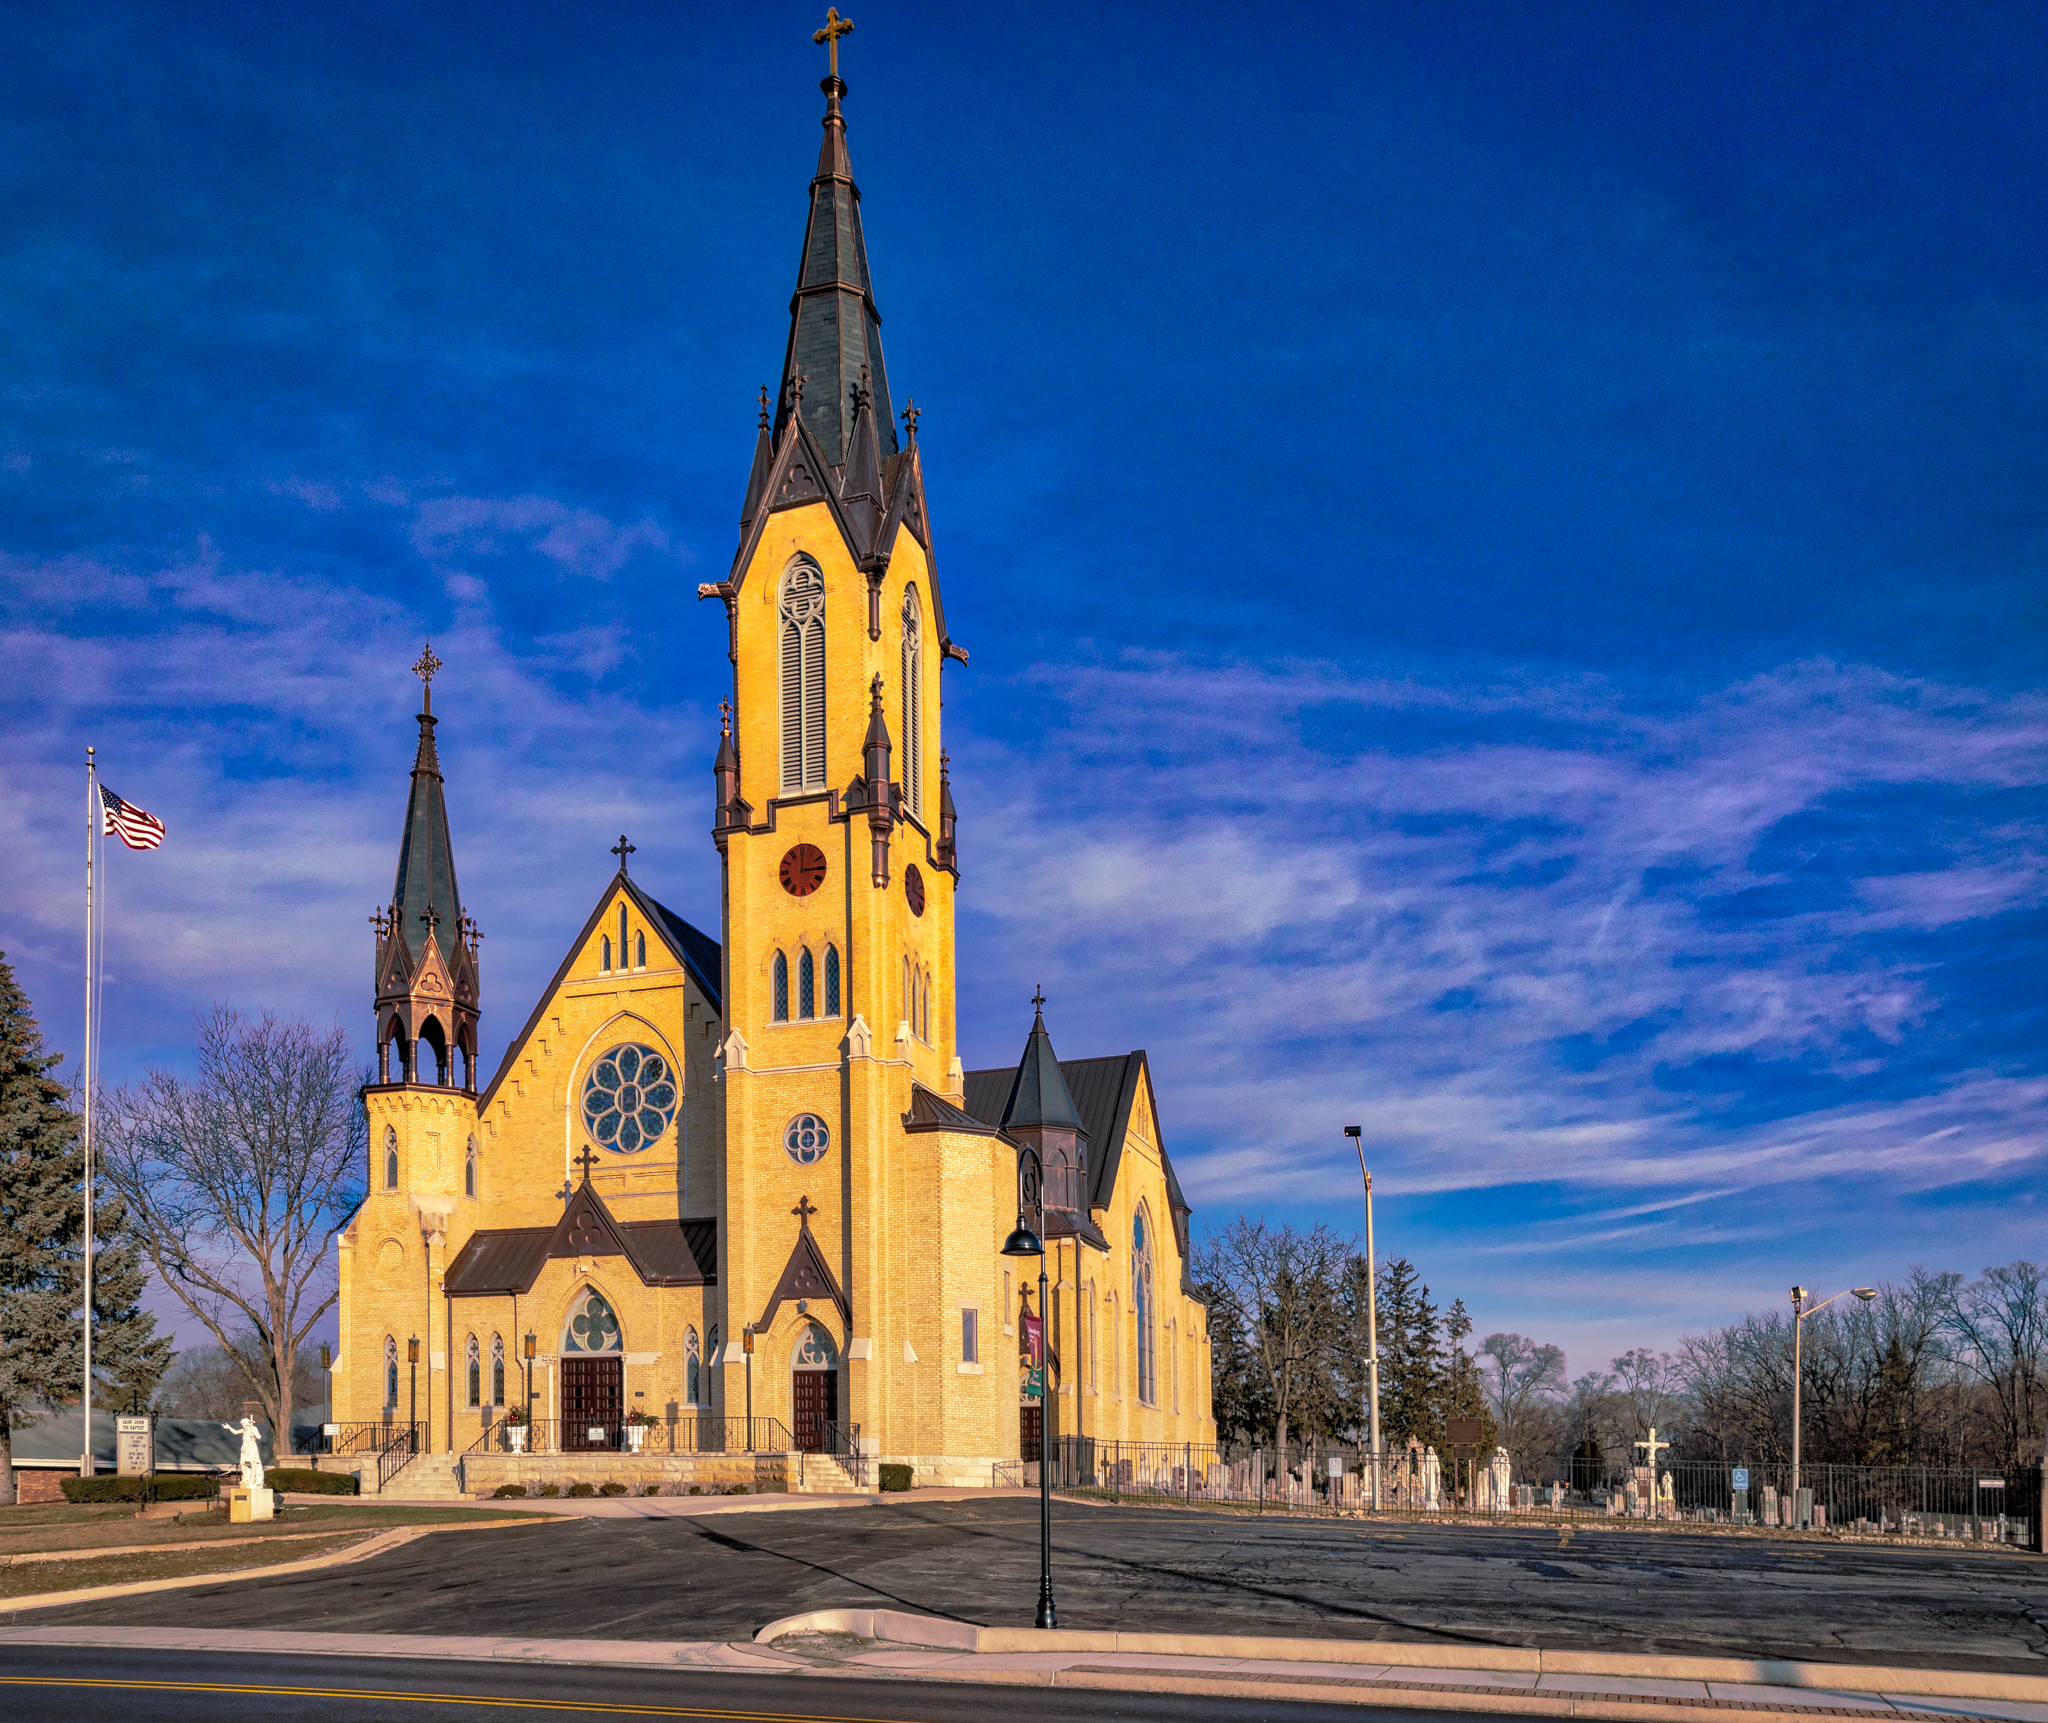 st_john_the_baptist_cathohlic_church_01.jpg